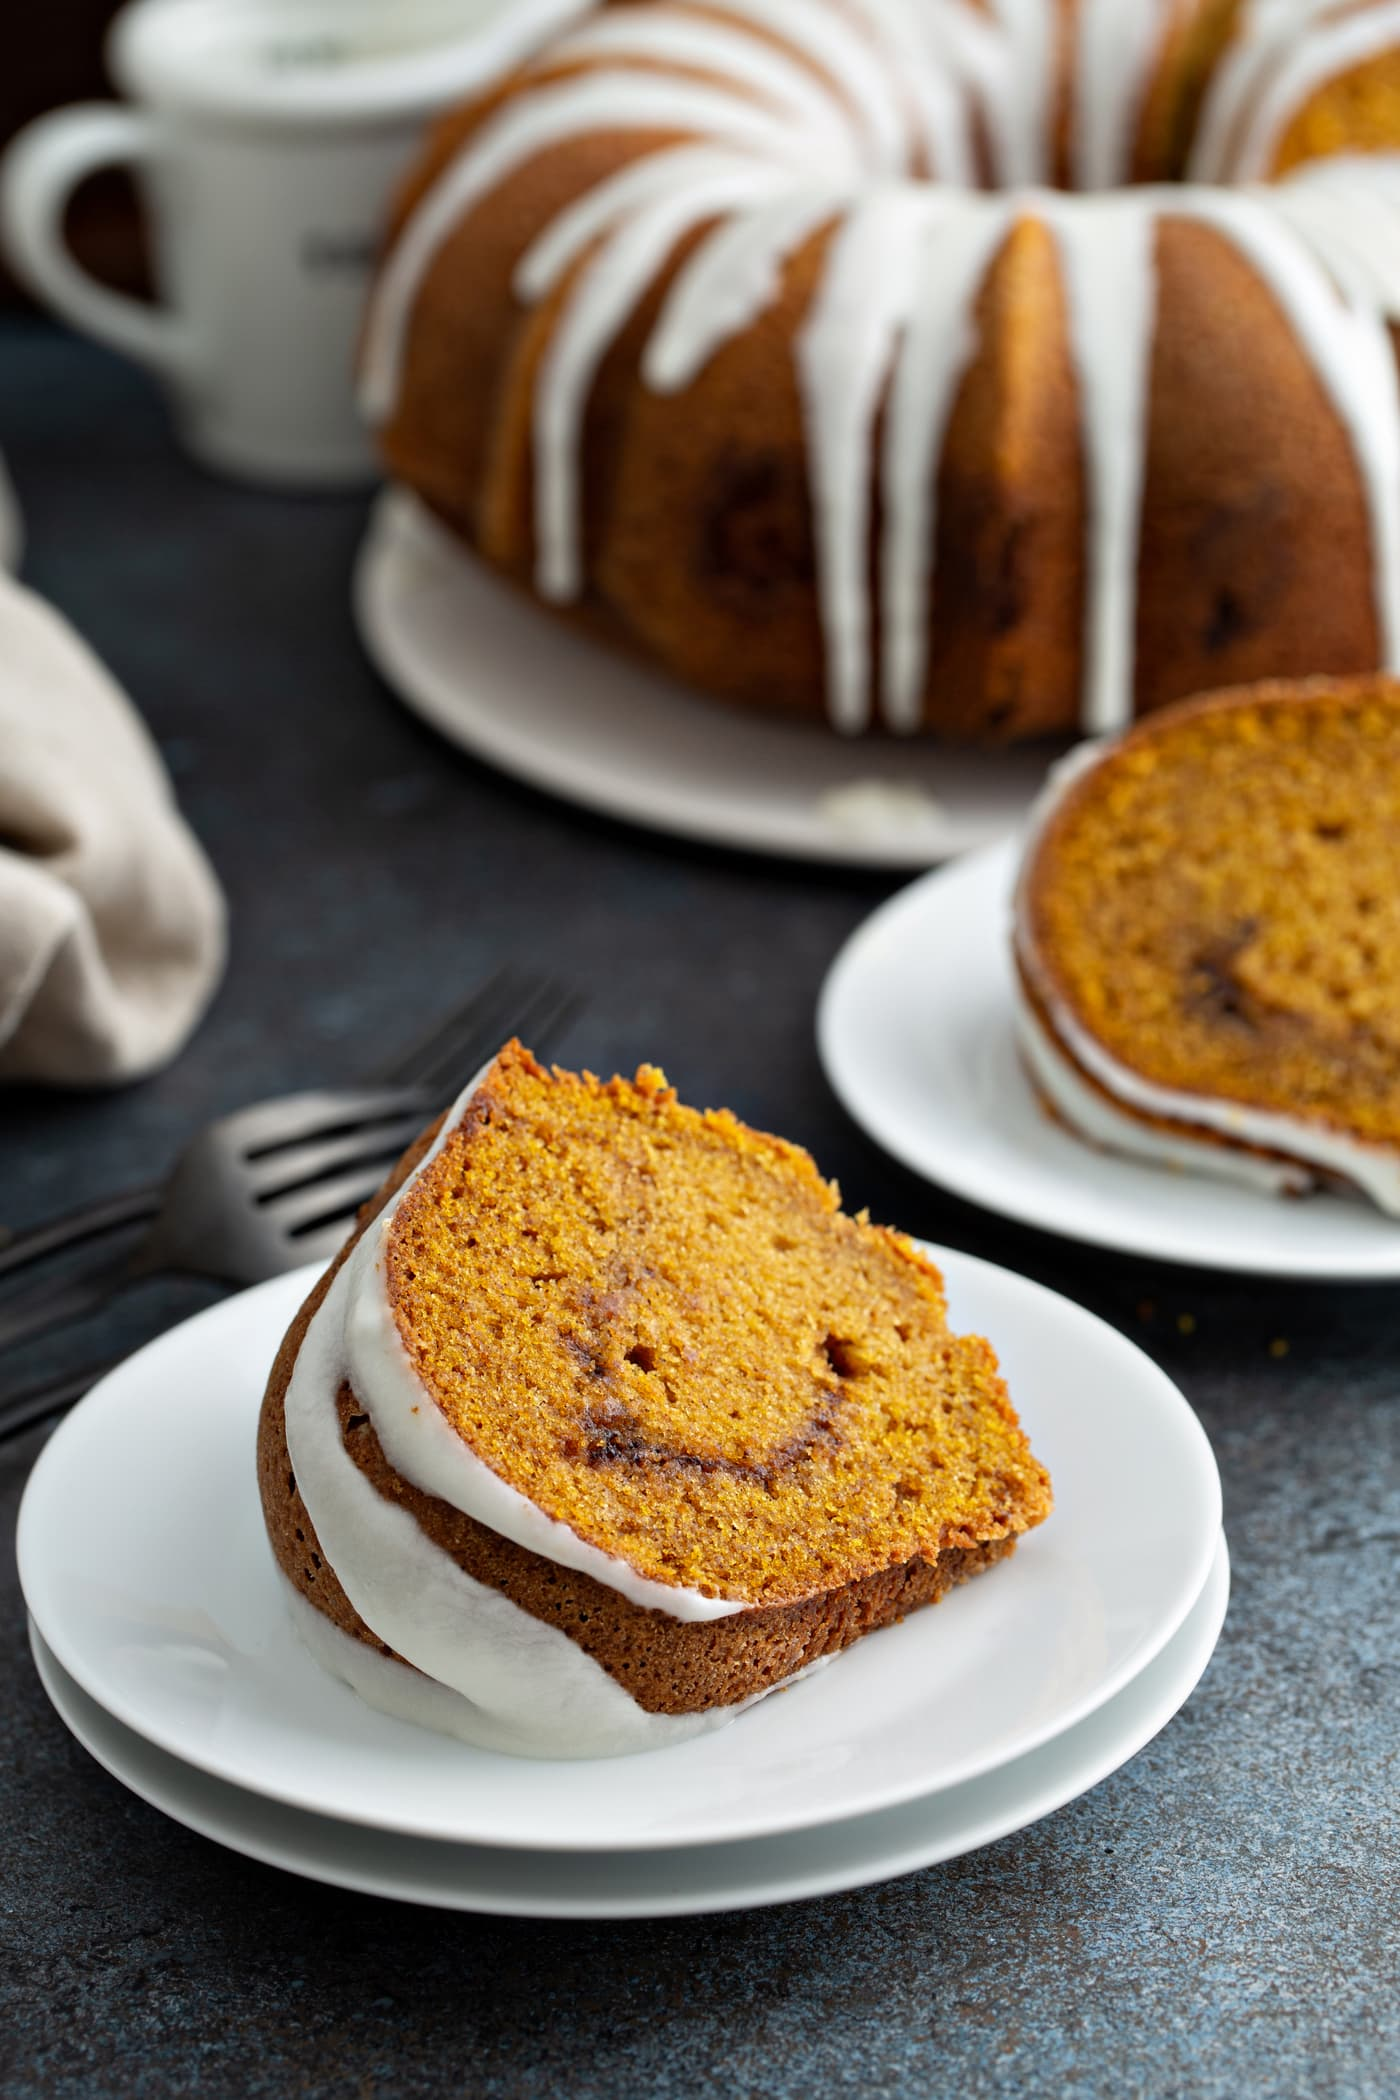 Two slices of sour cream cinnamon swirl pumpkin bundt cake on dessert plates. The cinnamon swirl center is visible and the cake top is drizzled with white glaze. The rest of the bundt cake with glaze drizzled over the top is in the background. A fork and napkin are next to one of the dessert plates.